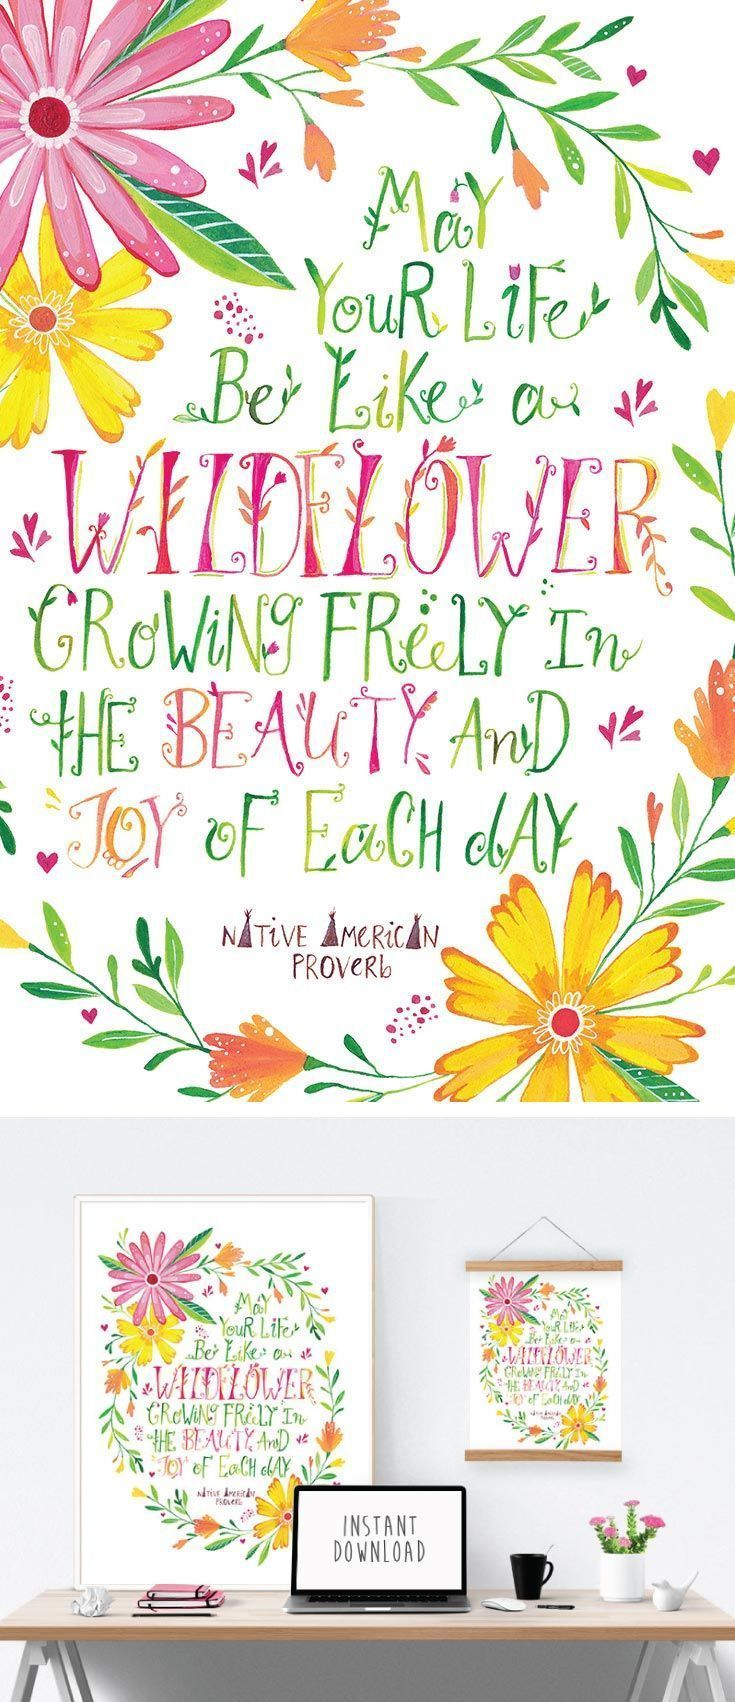 May Your Life Be Like A Wildflower Growing Freely In The Beauty And